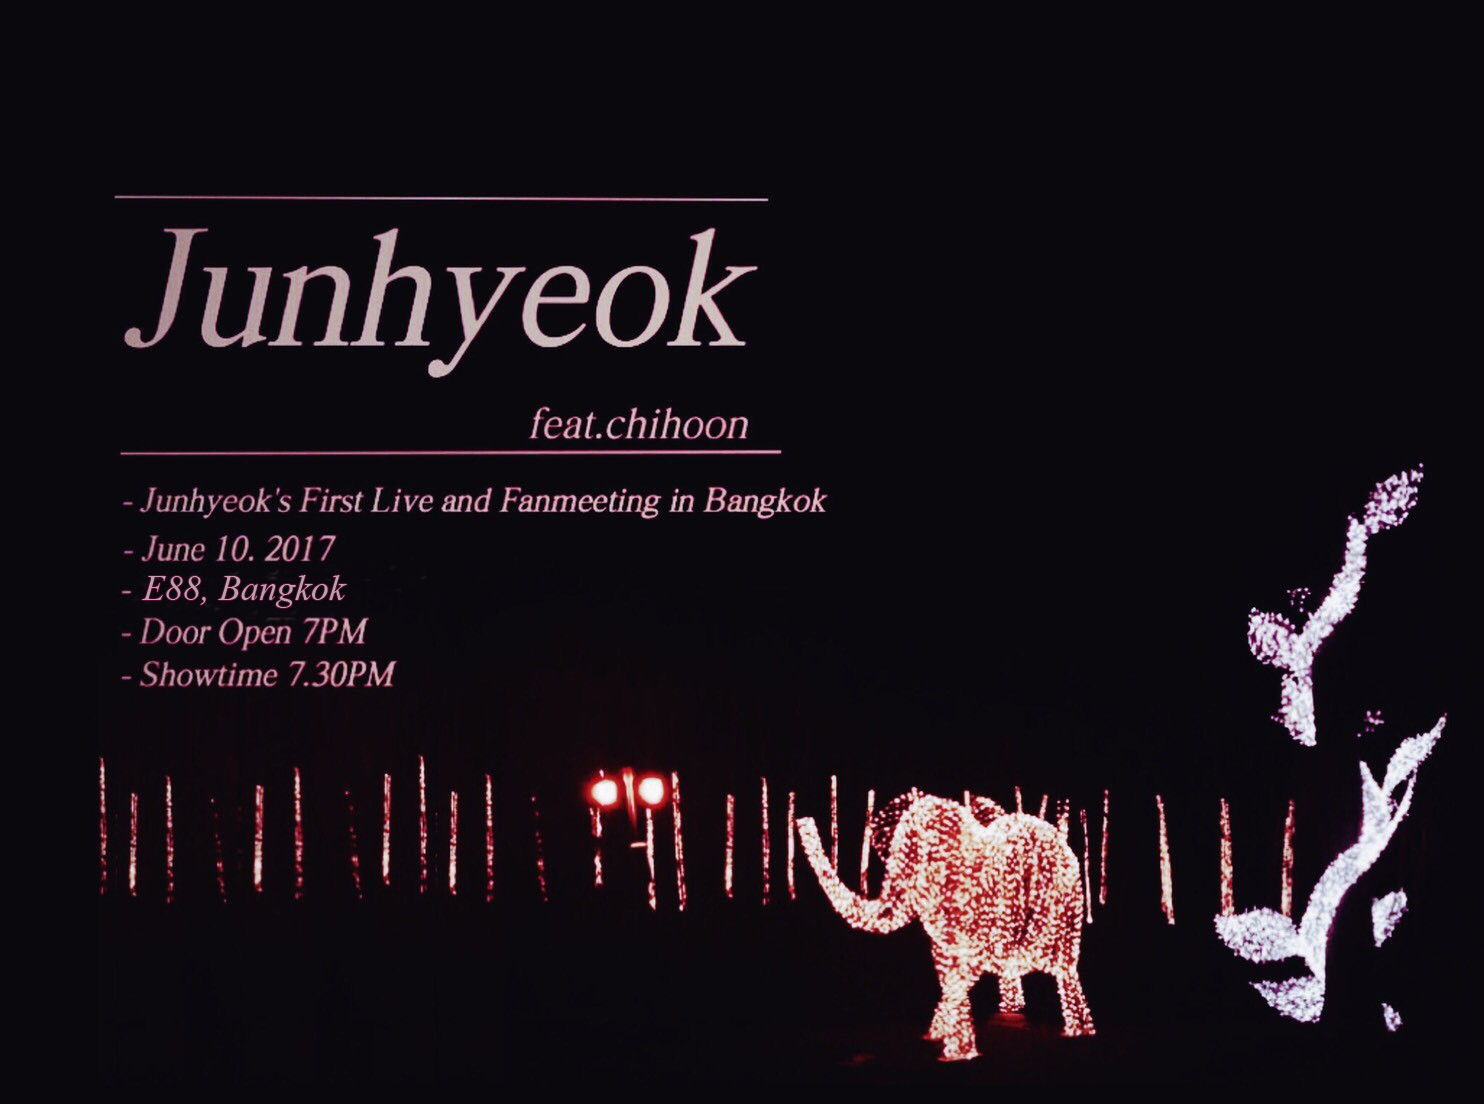 Junhyeok TH Fanmeeting